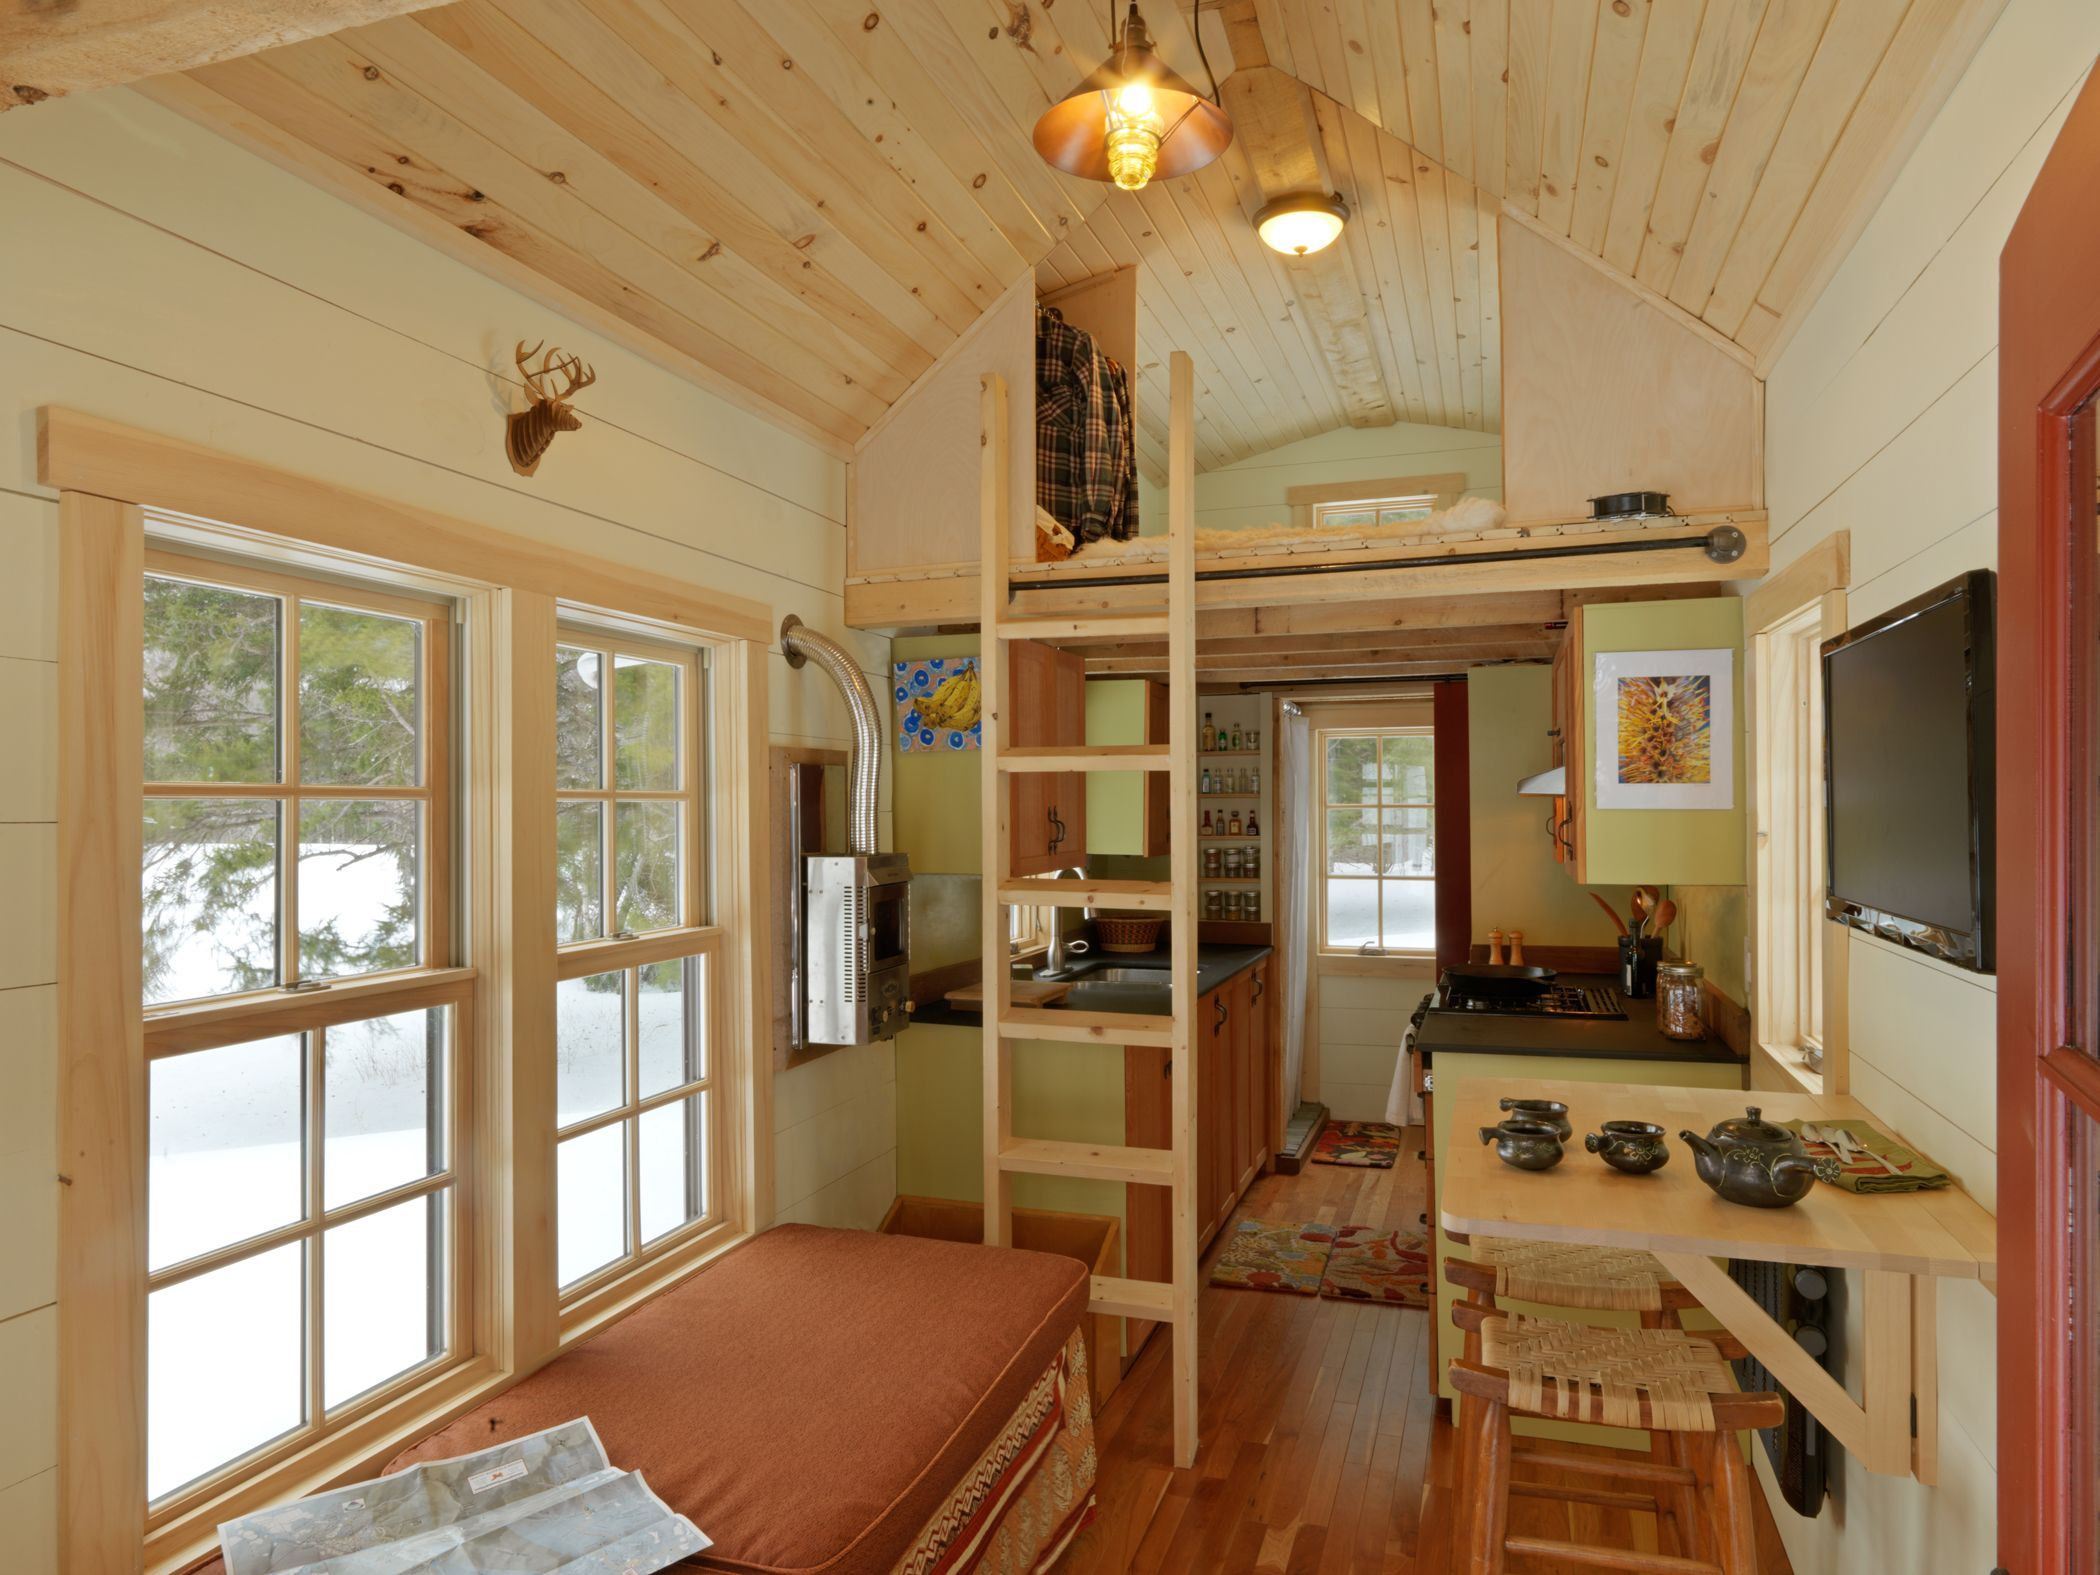 Ethan Waldmans tiny house includes everything he needs in a